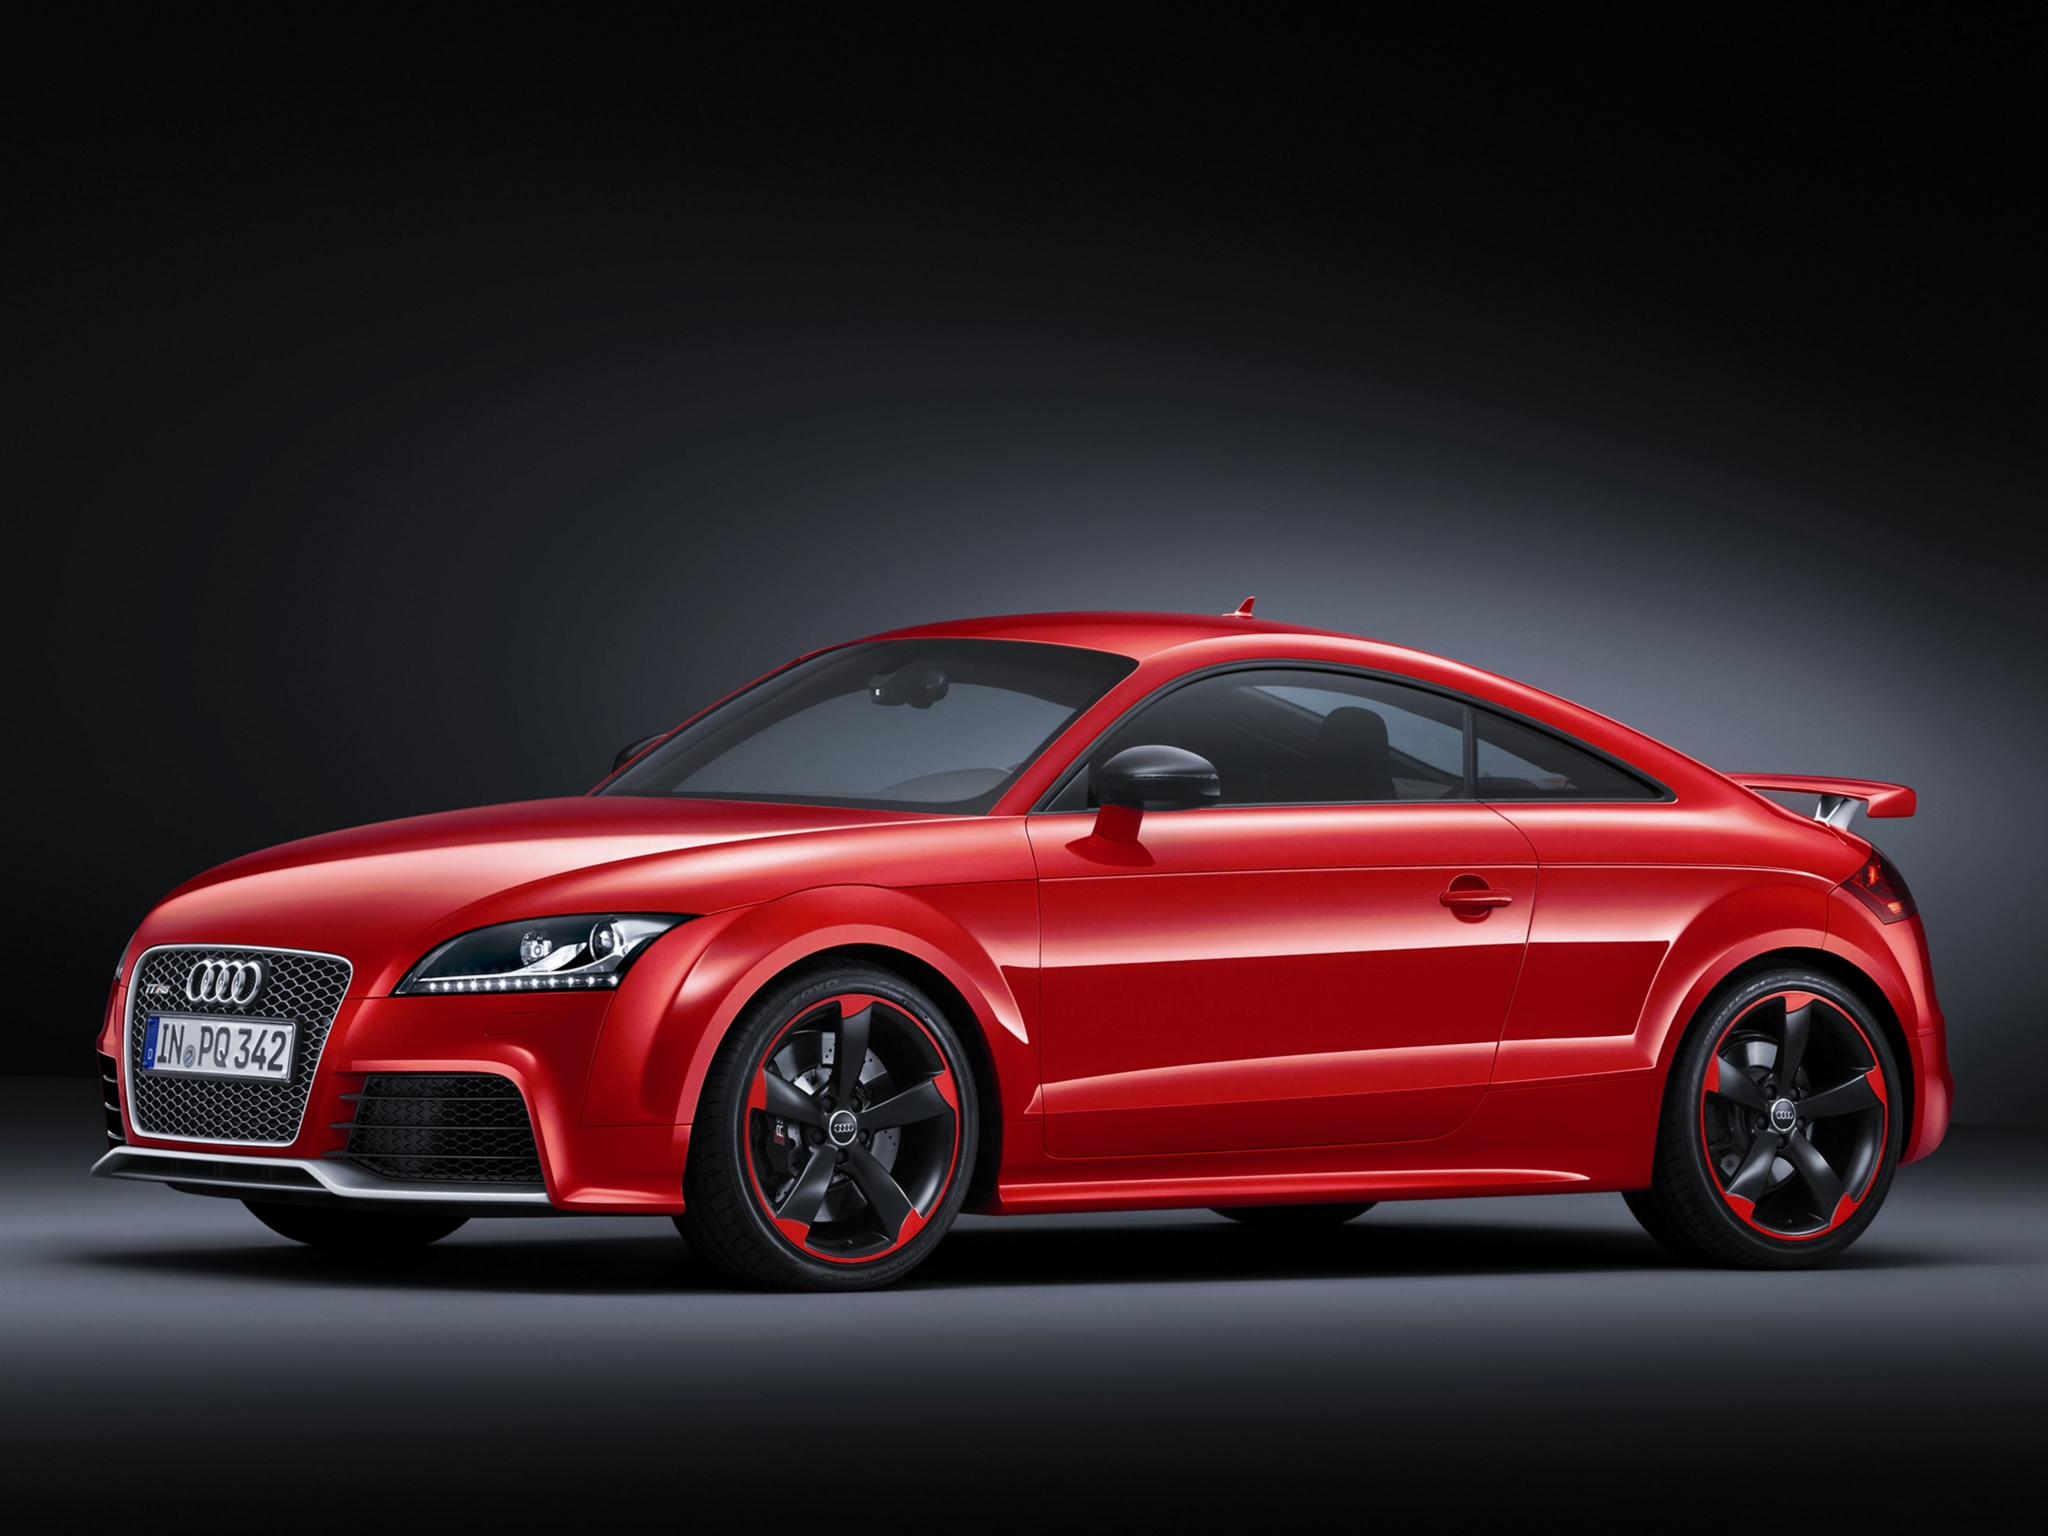 Audi TT RS plus Coupe Wallpapers | Cool Cars Wallpaper